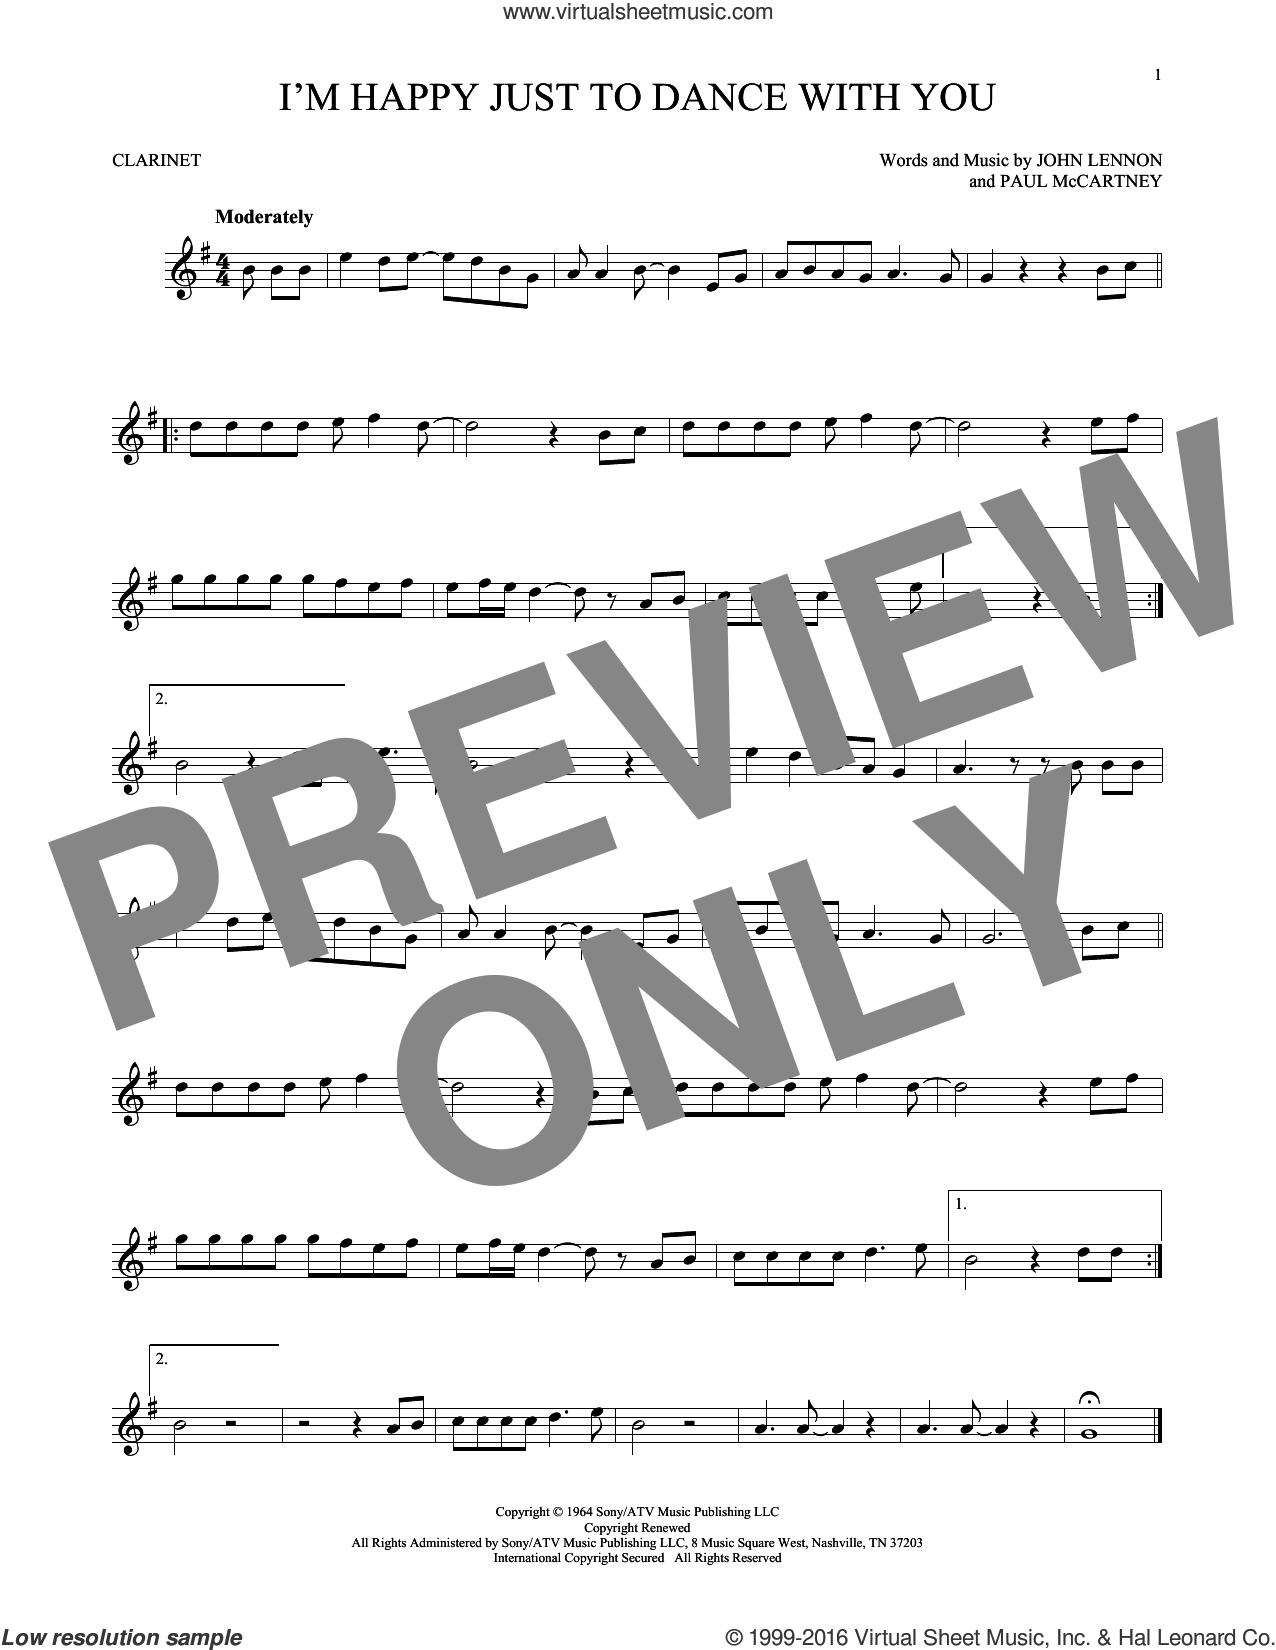 I'm Happy Just To Dance With You sheet music for clarinet solo by The Beatles, John Lennon and Paul McCartney. Score Image Preview.